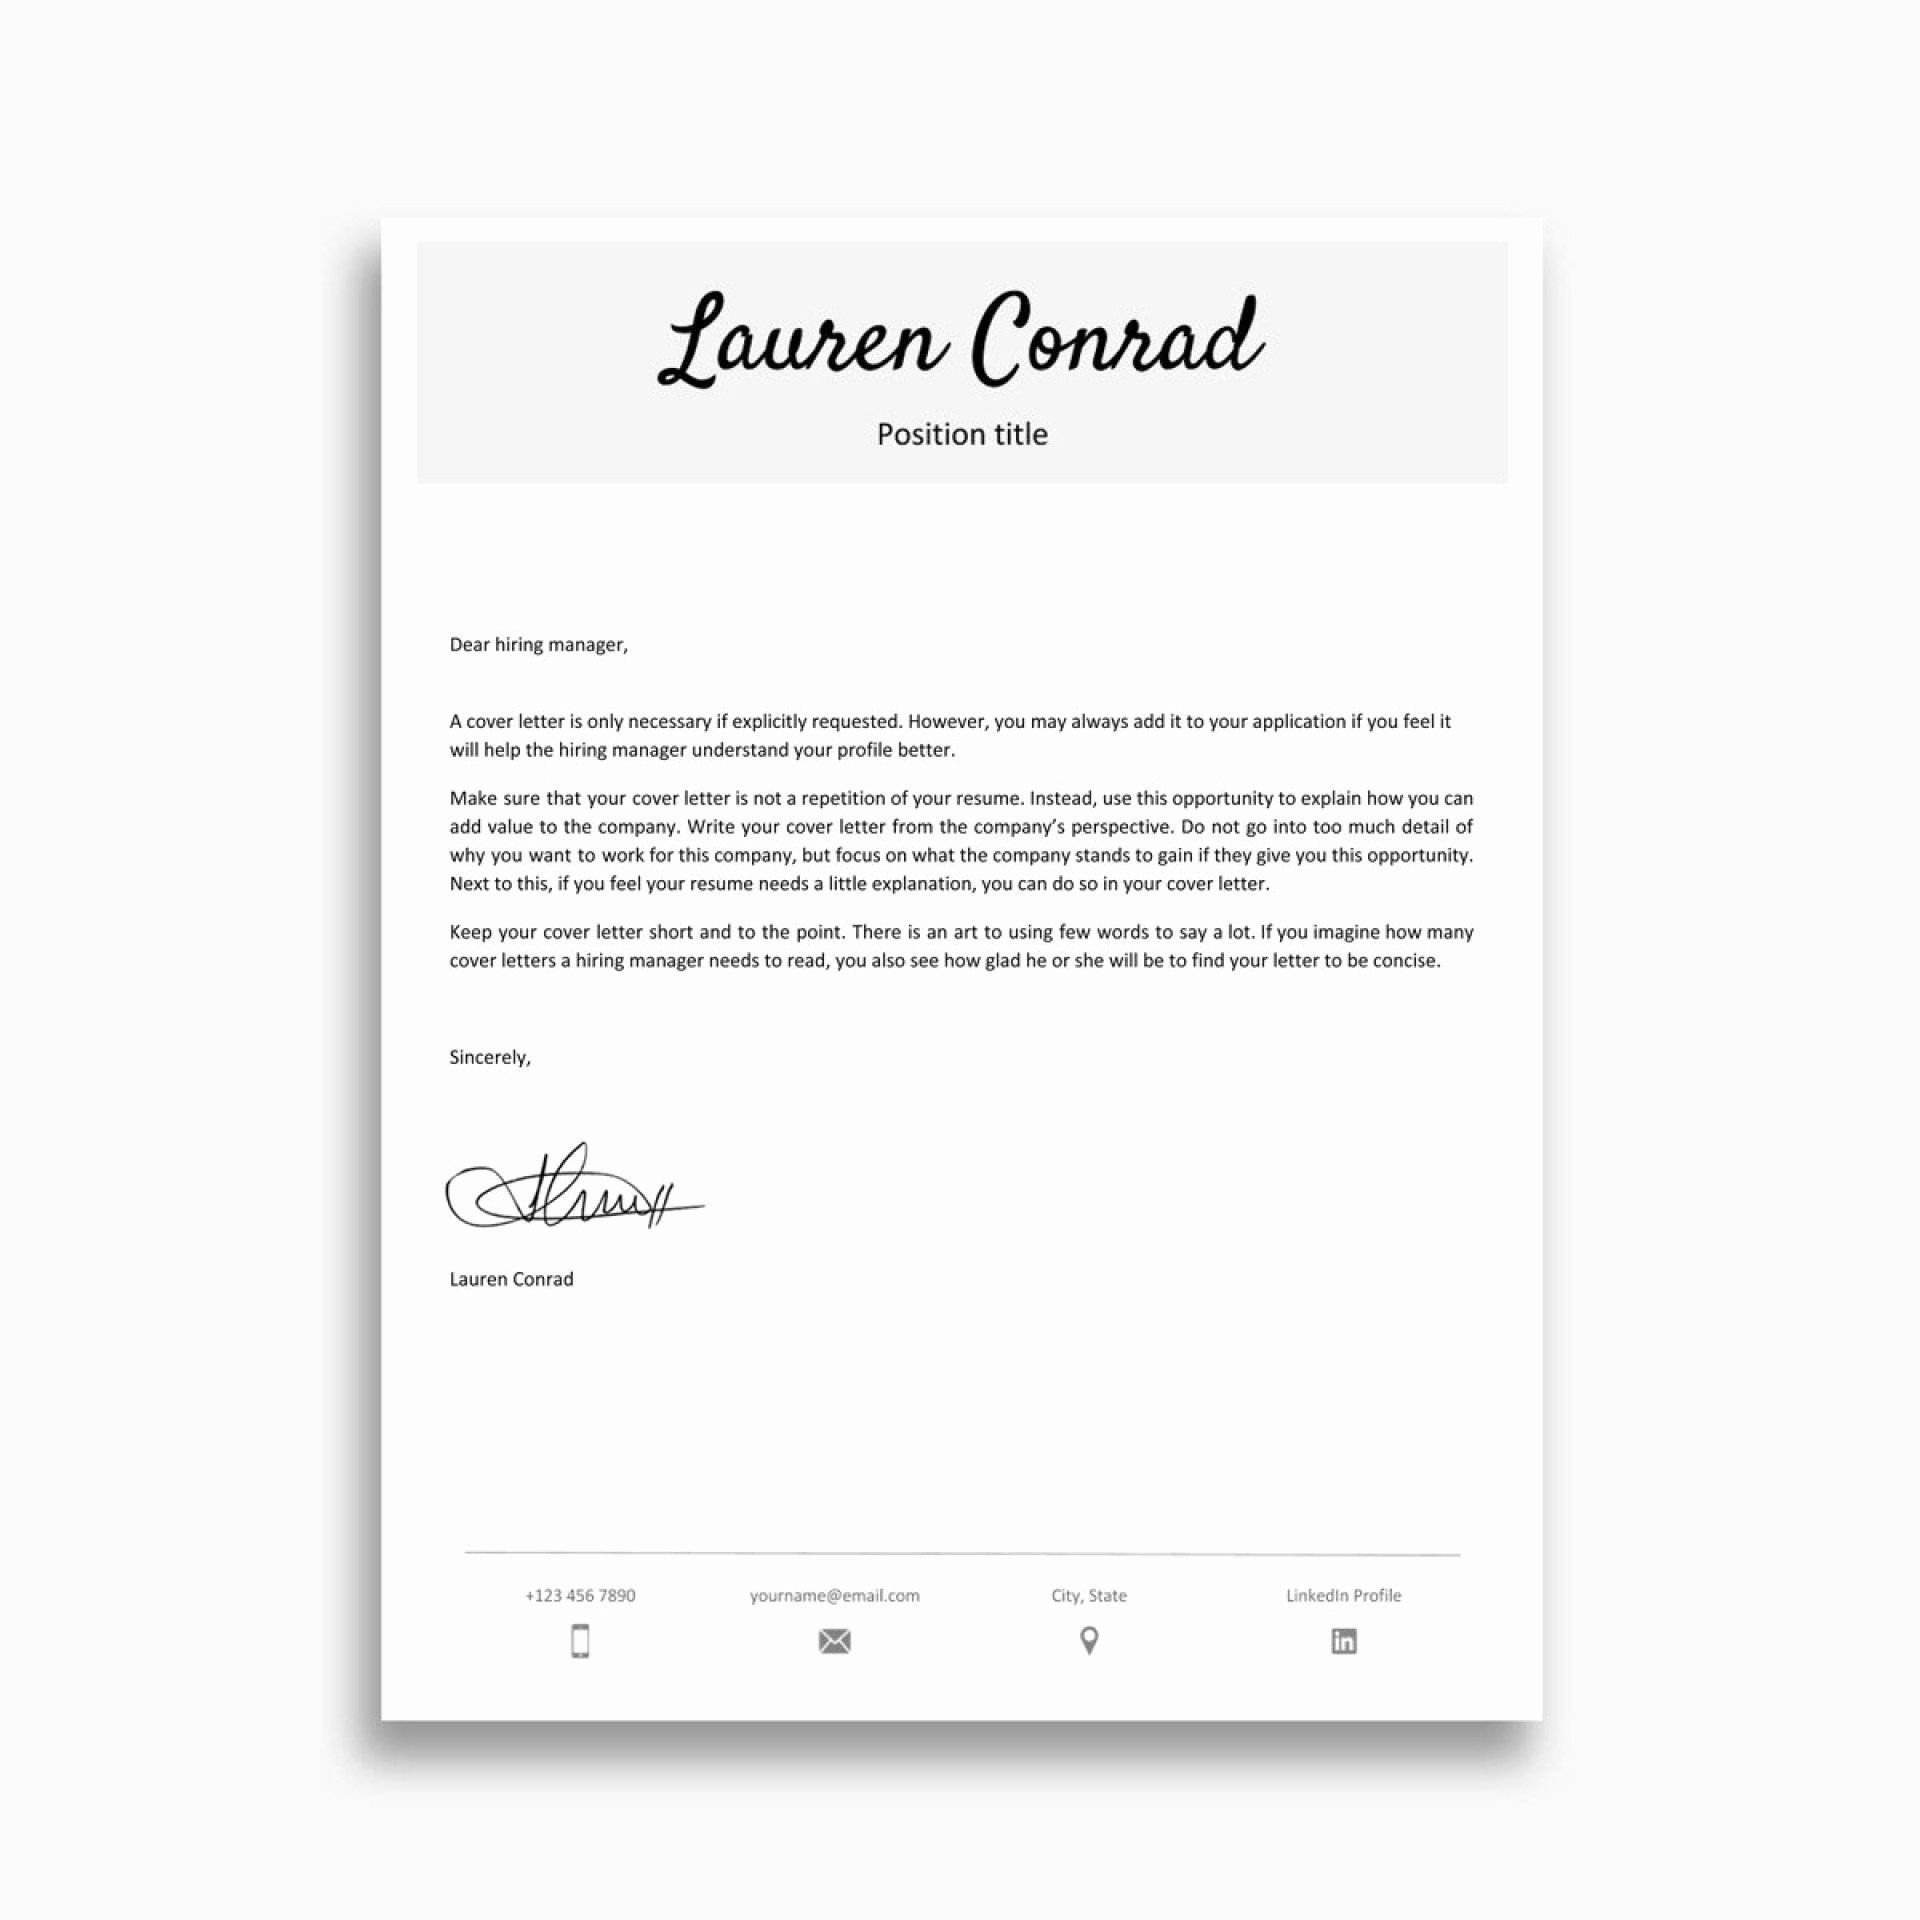 Cover Letter Template Google Drive Best Of 002 Cover Templates Google Docs 7 Template Ideas W Cover Letter Template Letter Templates Cover Letter Template Free Cover letter template google doc